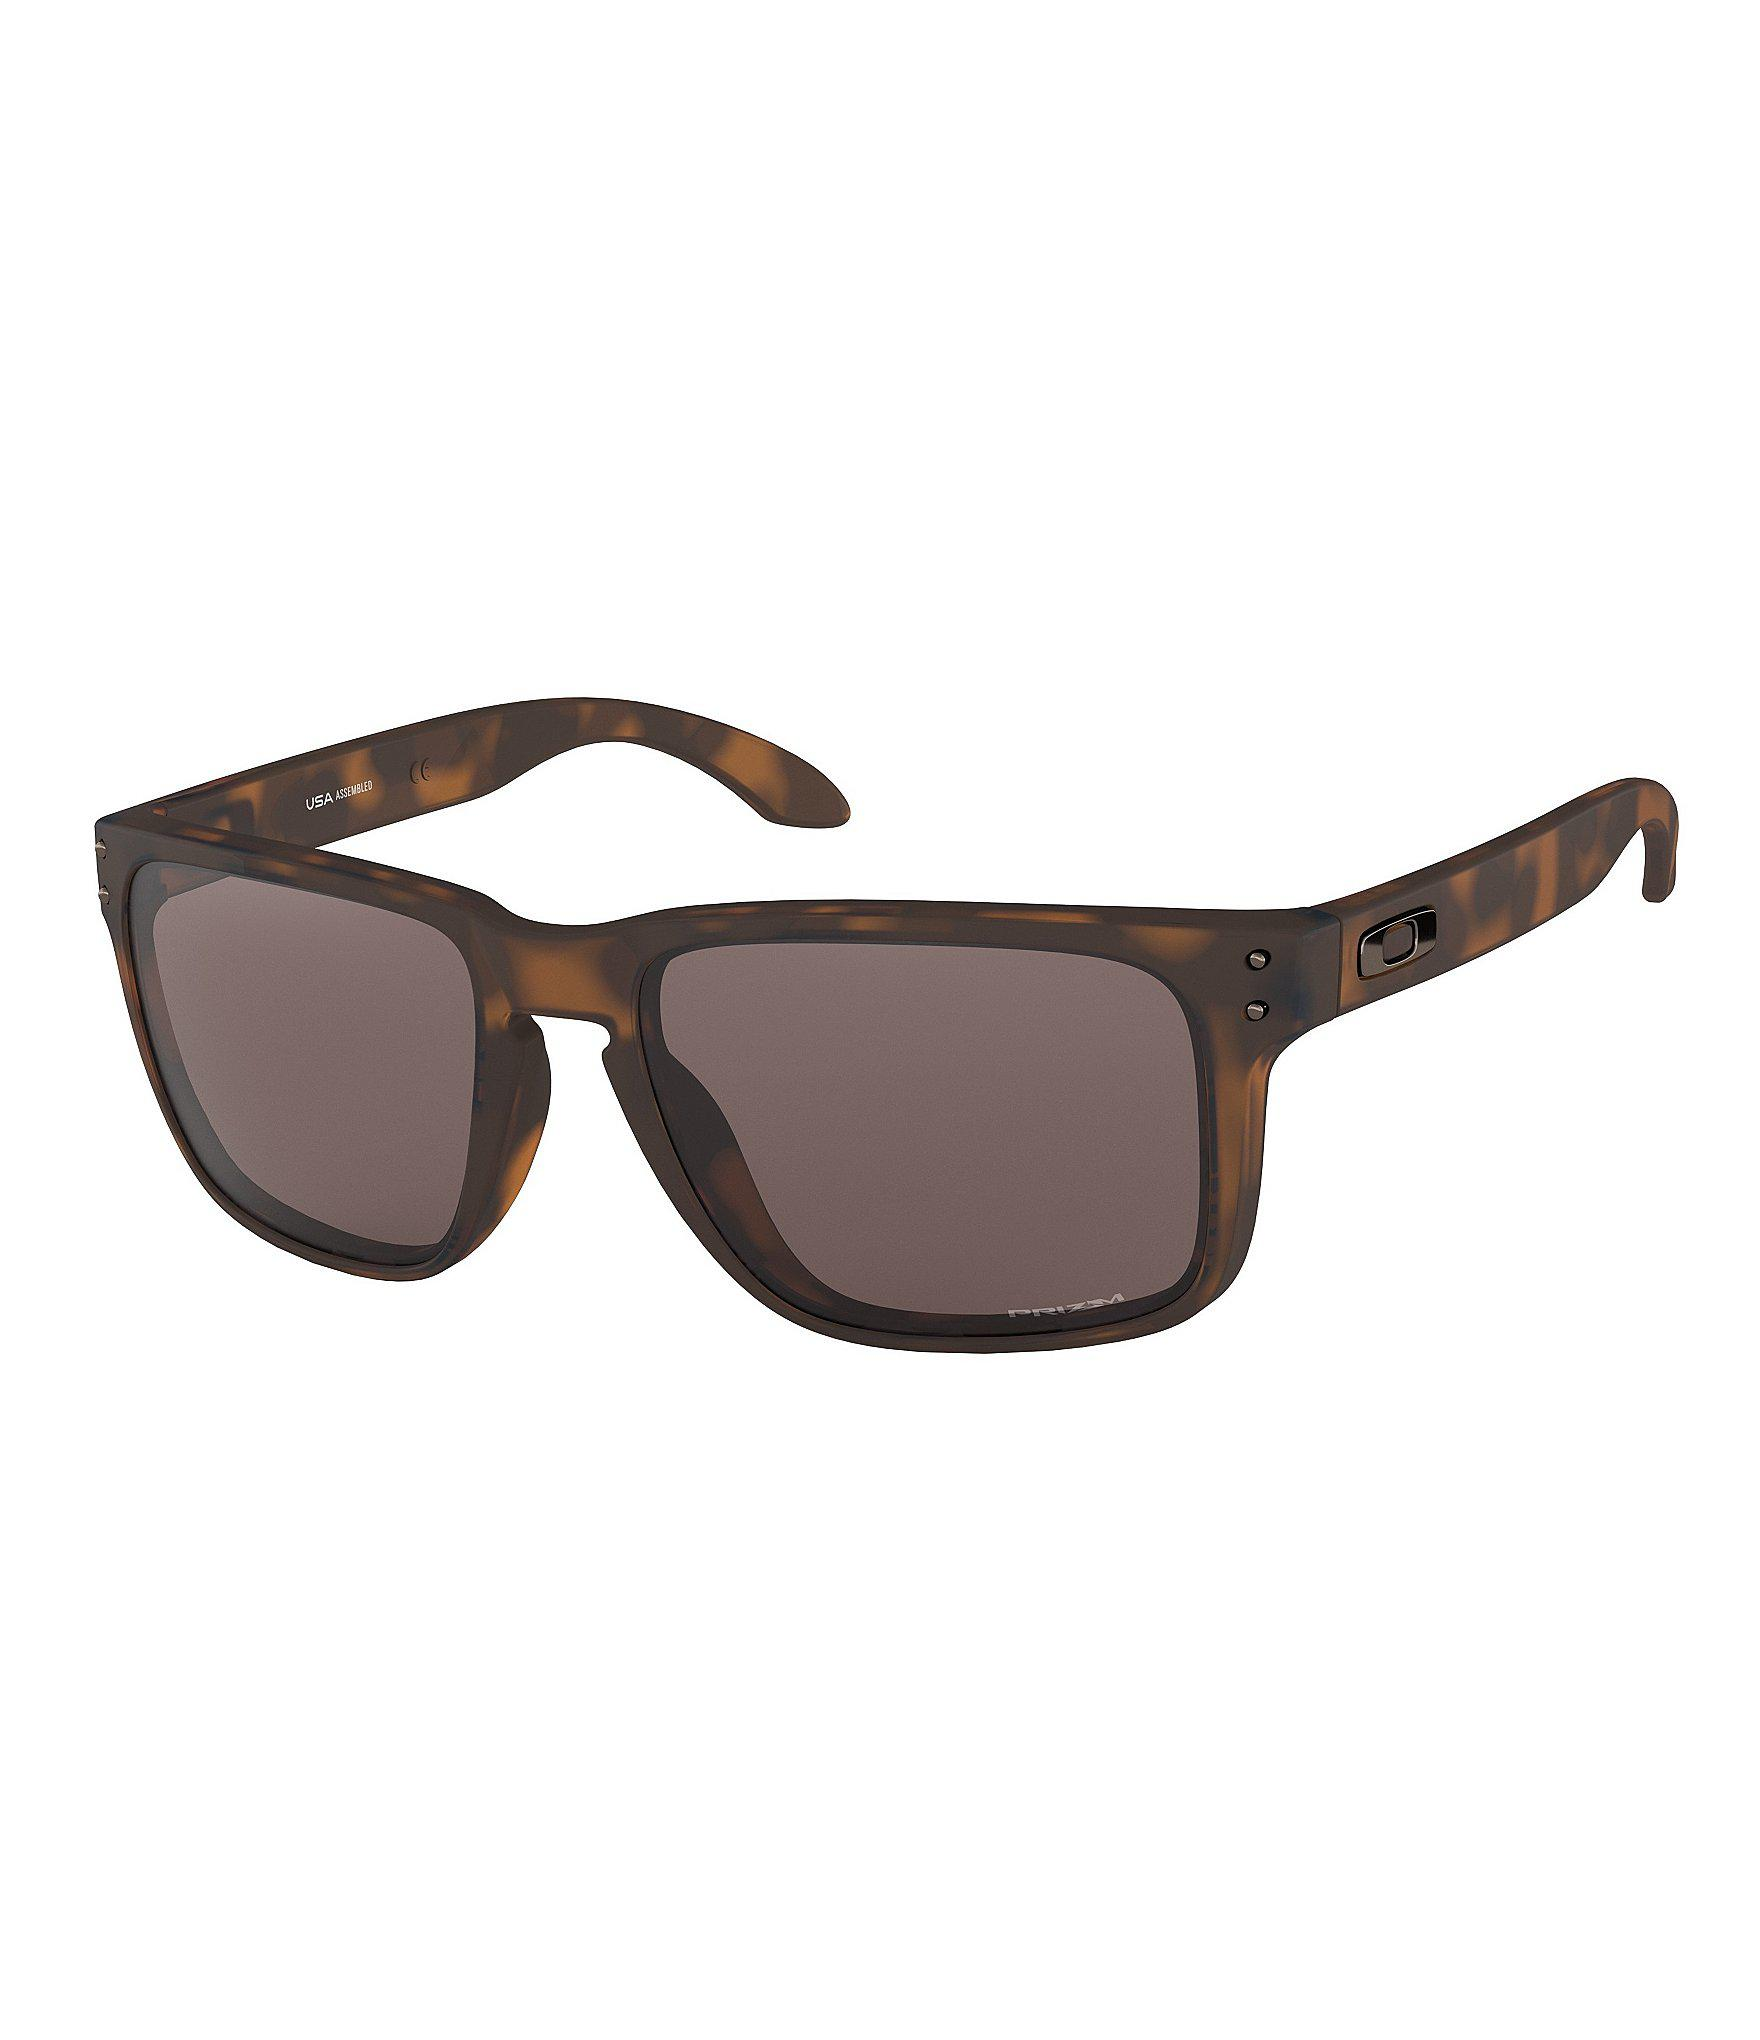 036a307514 Lyst - Oakley Mens Tortoise Holbrook Xl Sunglasses in Brown for Men